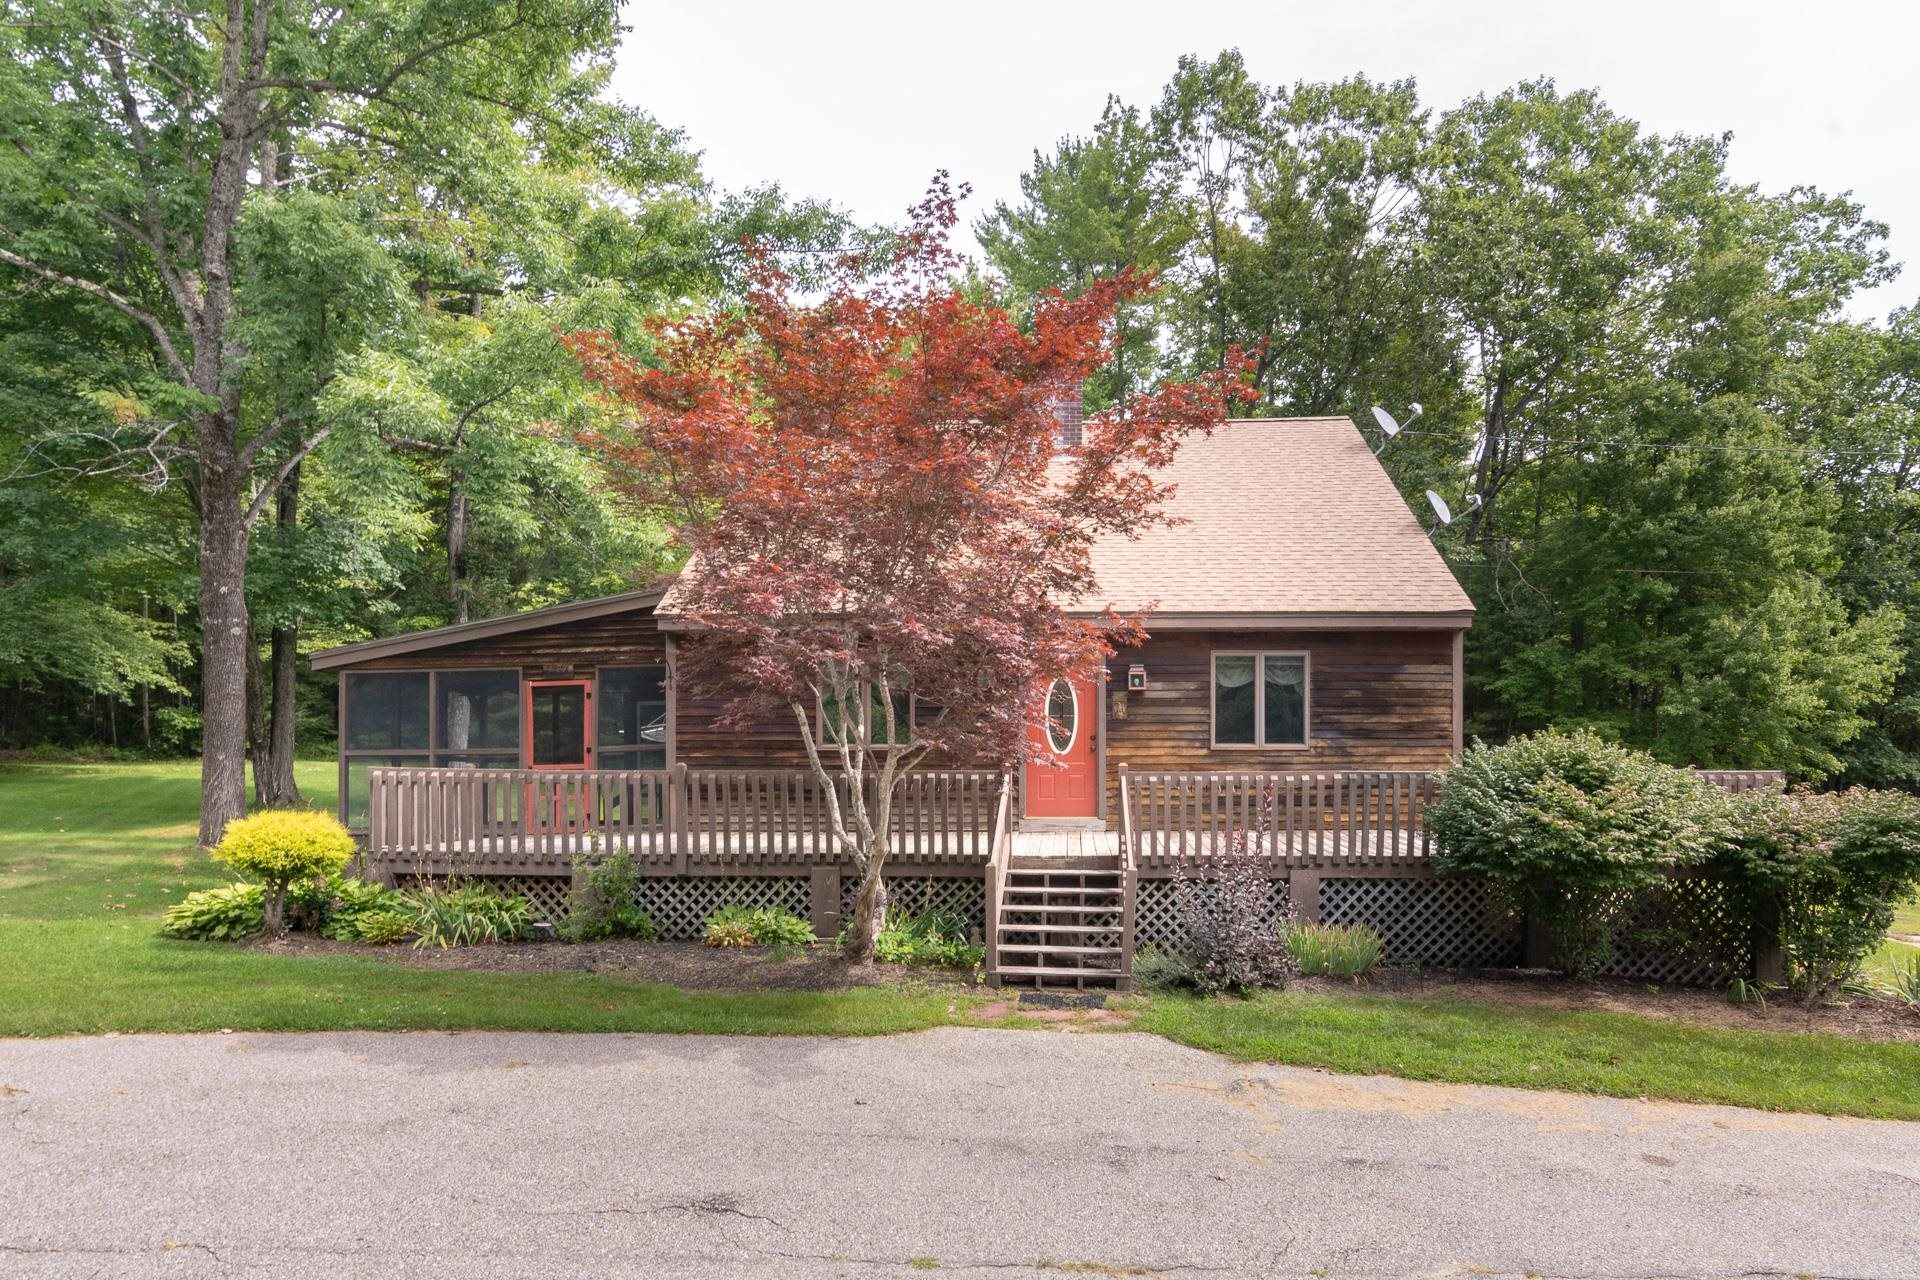 260 NH Route 25, Meredith, NH 03253